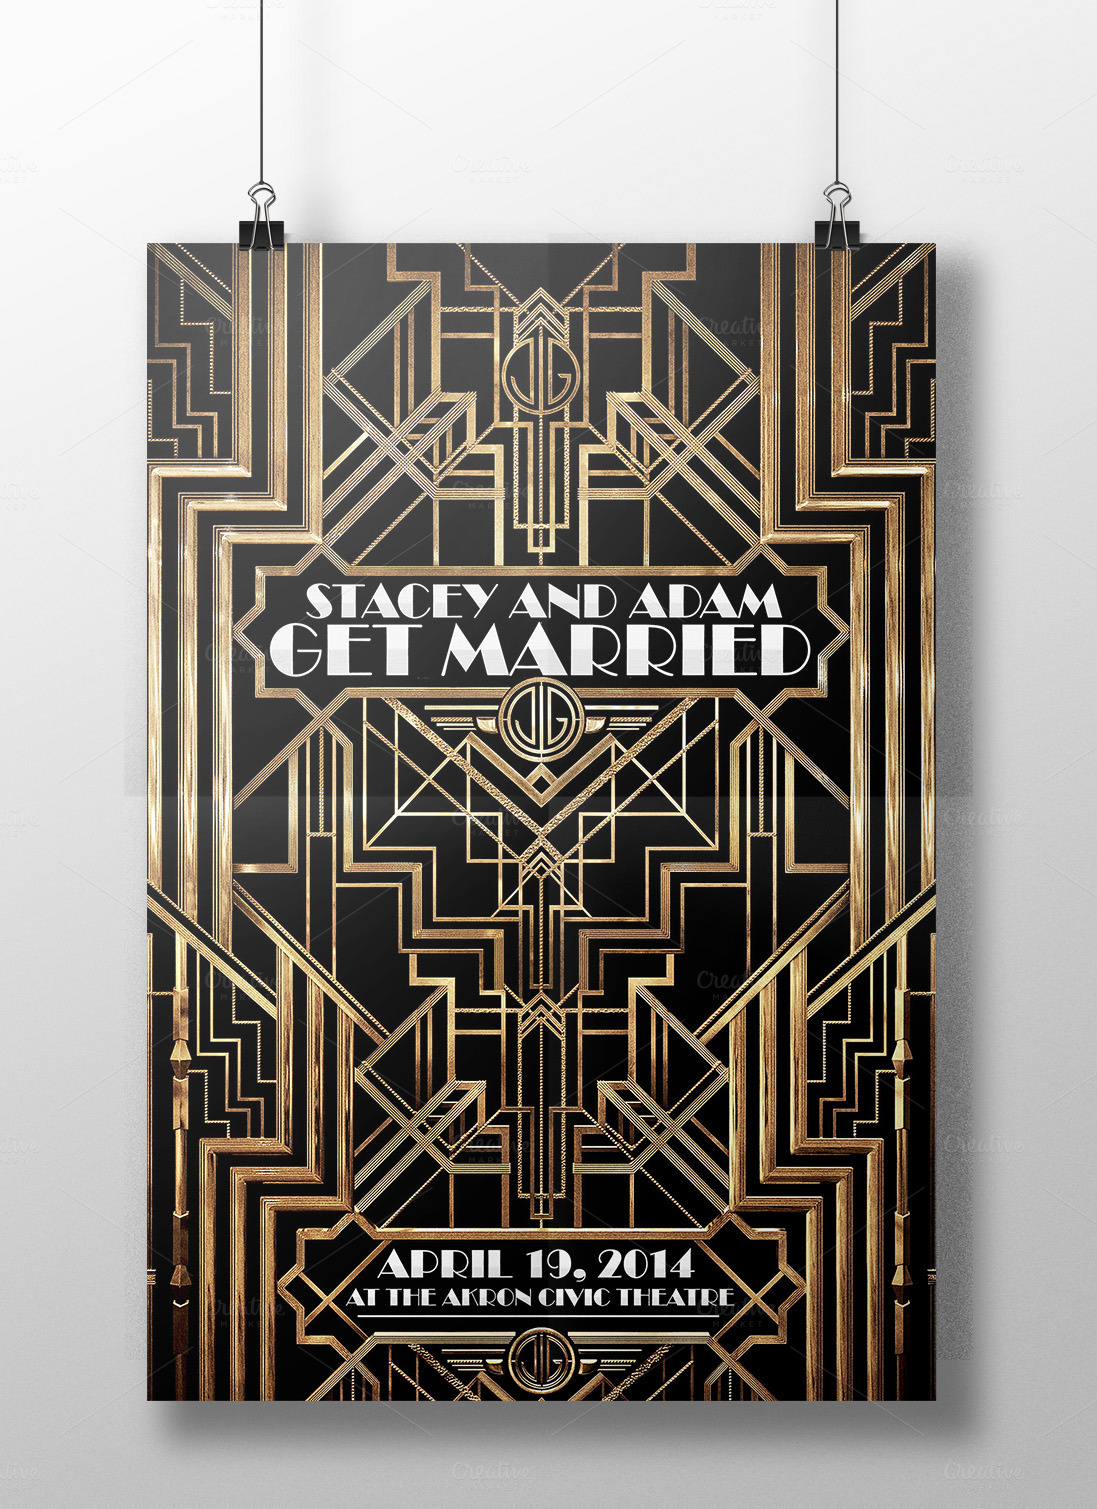 THE GREAT GATSBY FLYER (WEDDINGS) ~ Flyer Templates on ...